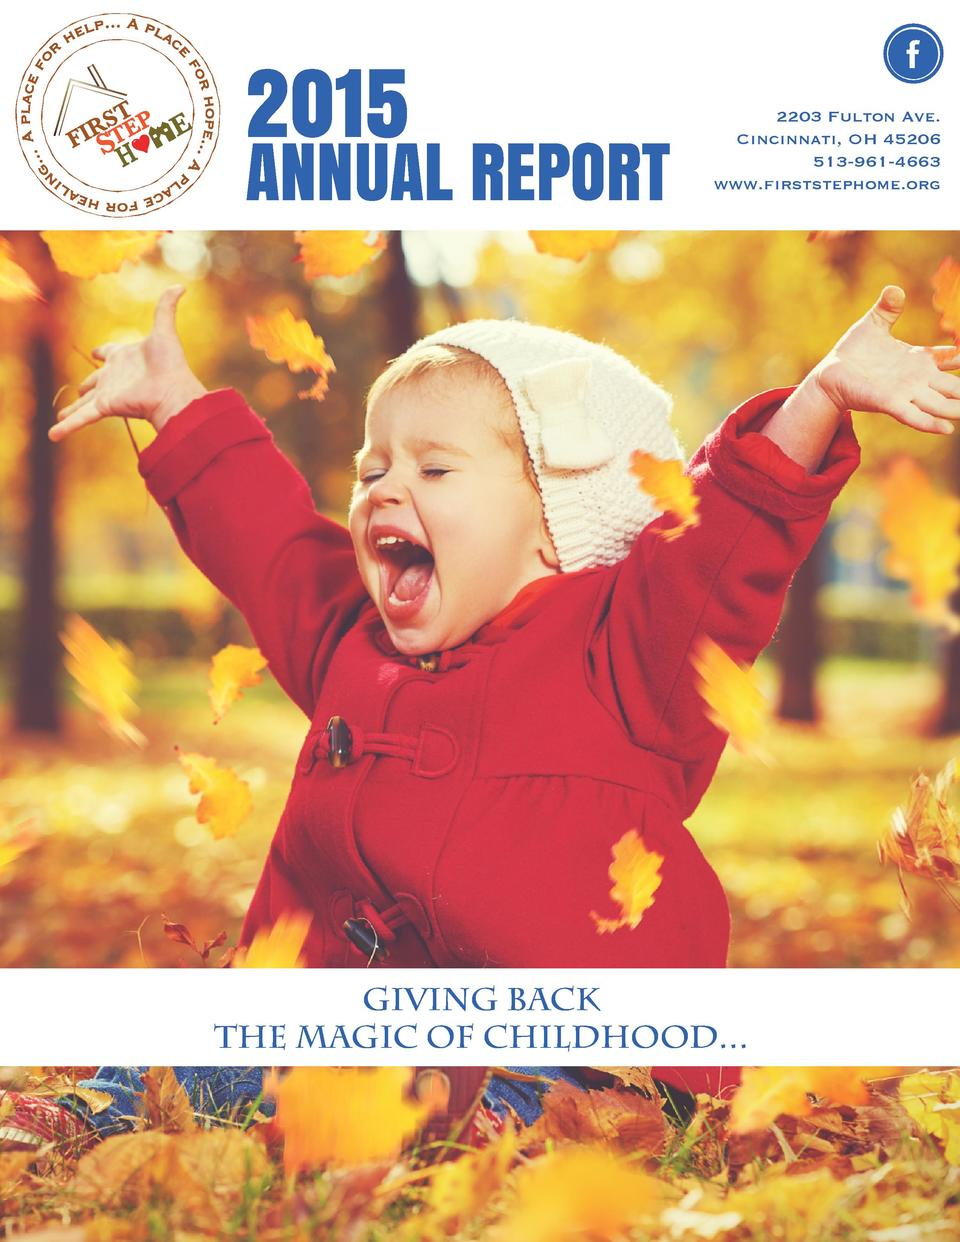 2015  ANNUAL REPORT  2203 Fulton Ave. Cincinnati, OH 45206 513-961-4663 www.firststephome.org  Giving back the magic of ch...